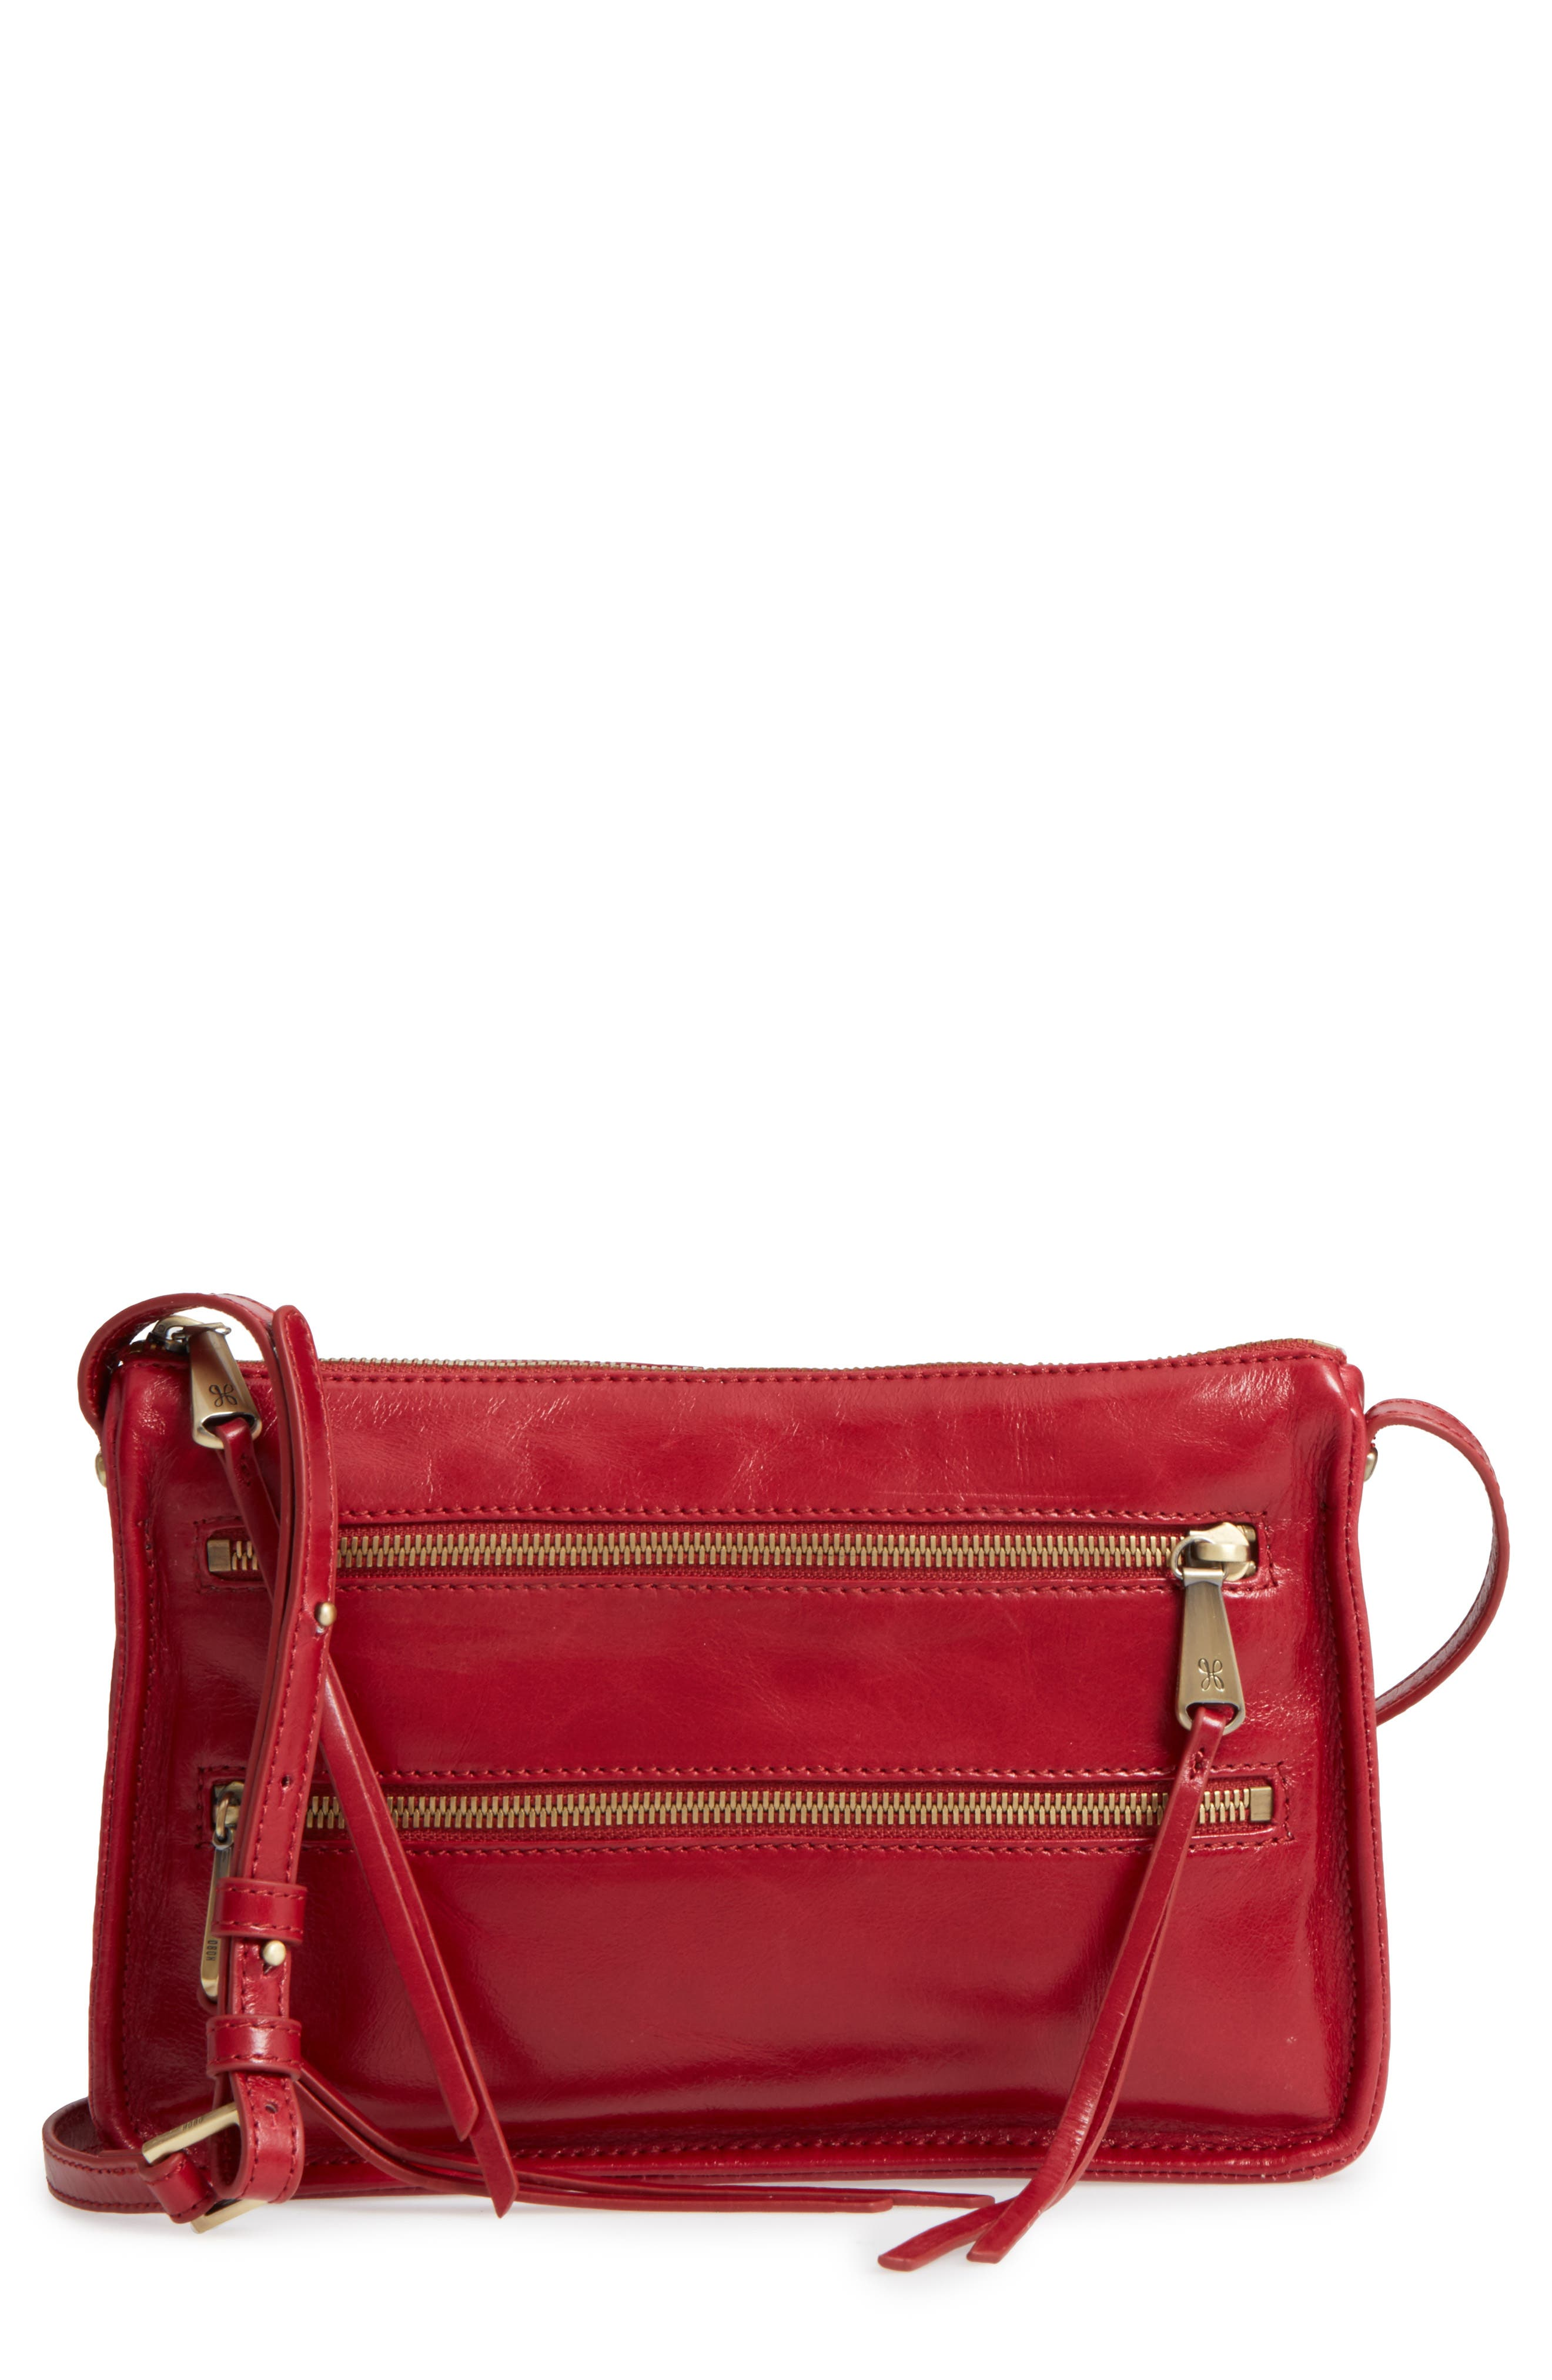 Main Image - Hobo Mission Leather Crossbody Bag